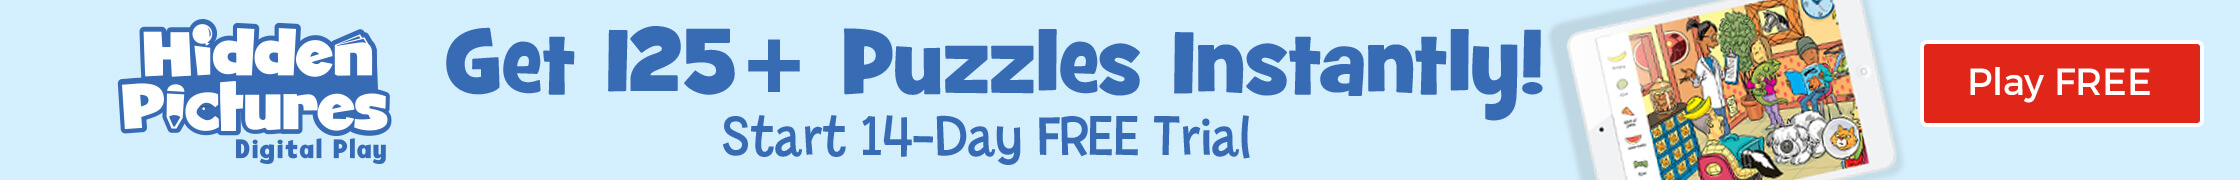 Start your free 14-day trial of Hidden Pictures Digital Play and get 125+ puzzles instantly!